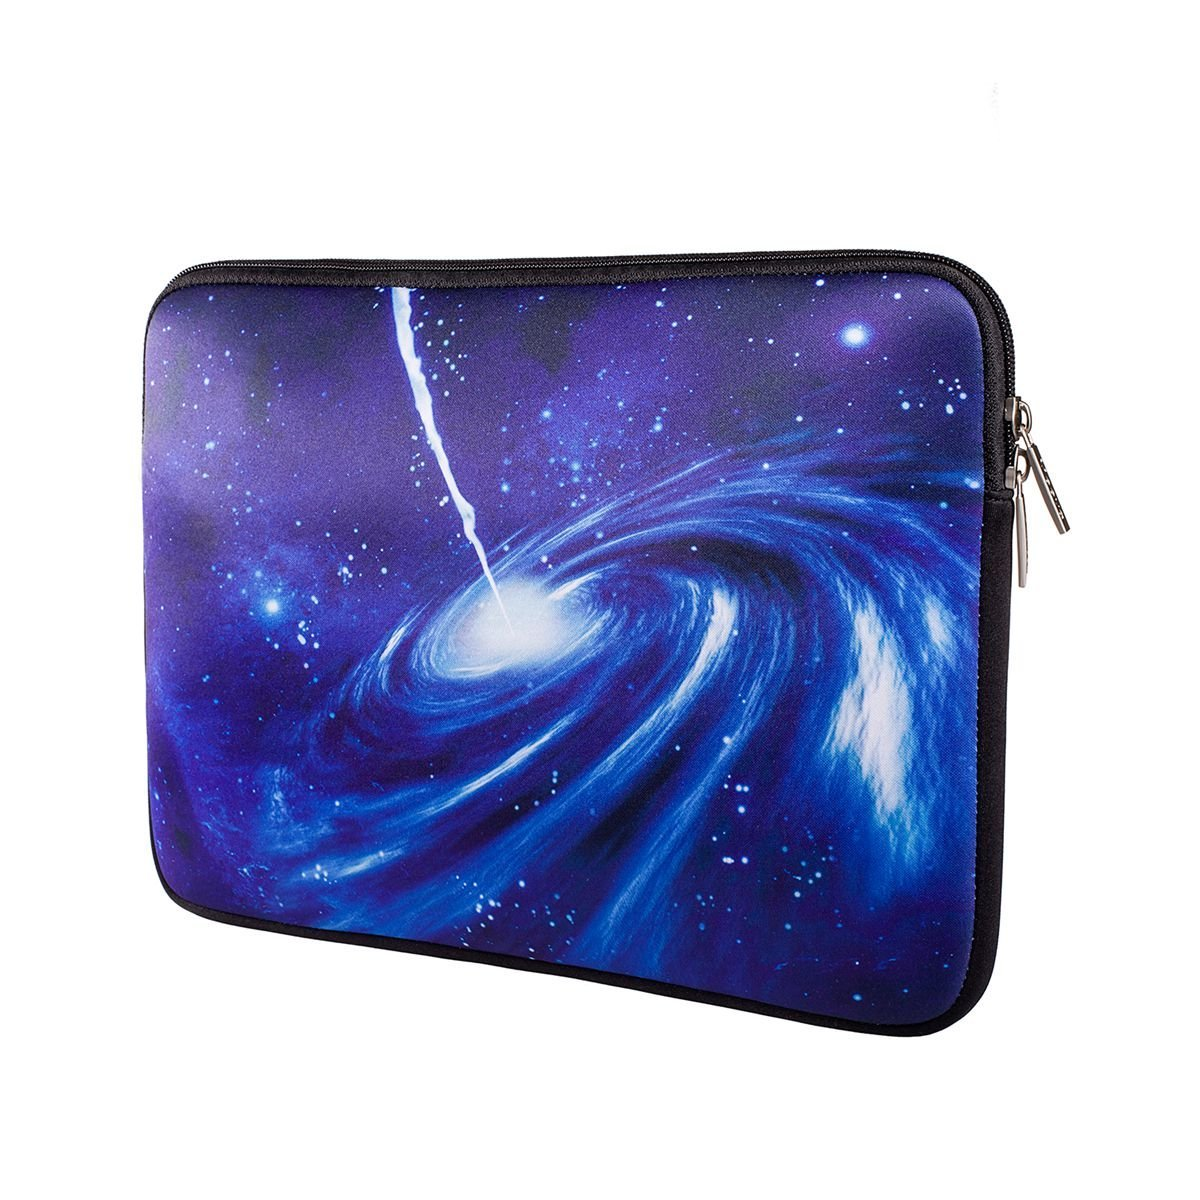 Amazon.com: Voova 11.6 inch Galaxy Pattern Laptop Sleeve Case Water-resistant Neoprene Notebook Pocket/Tablet Briefcase Carrying Bag/Pouch Skin Cover for Acer/Asus/Dell/Fujitsu/Lenovo/HP/Samsung/Sony/Toshiba: Computers & Accessories